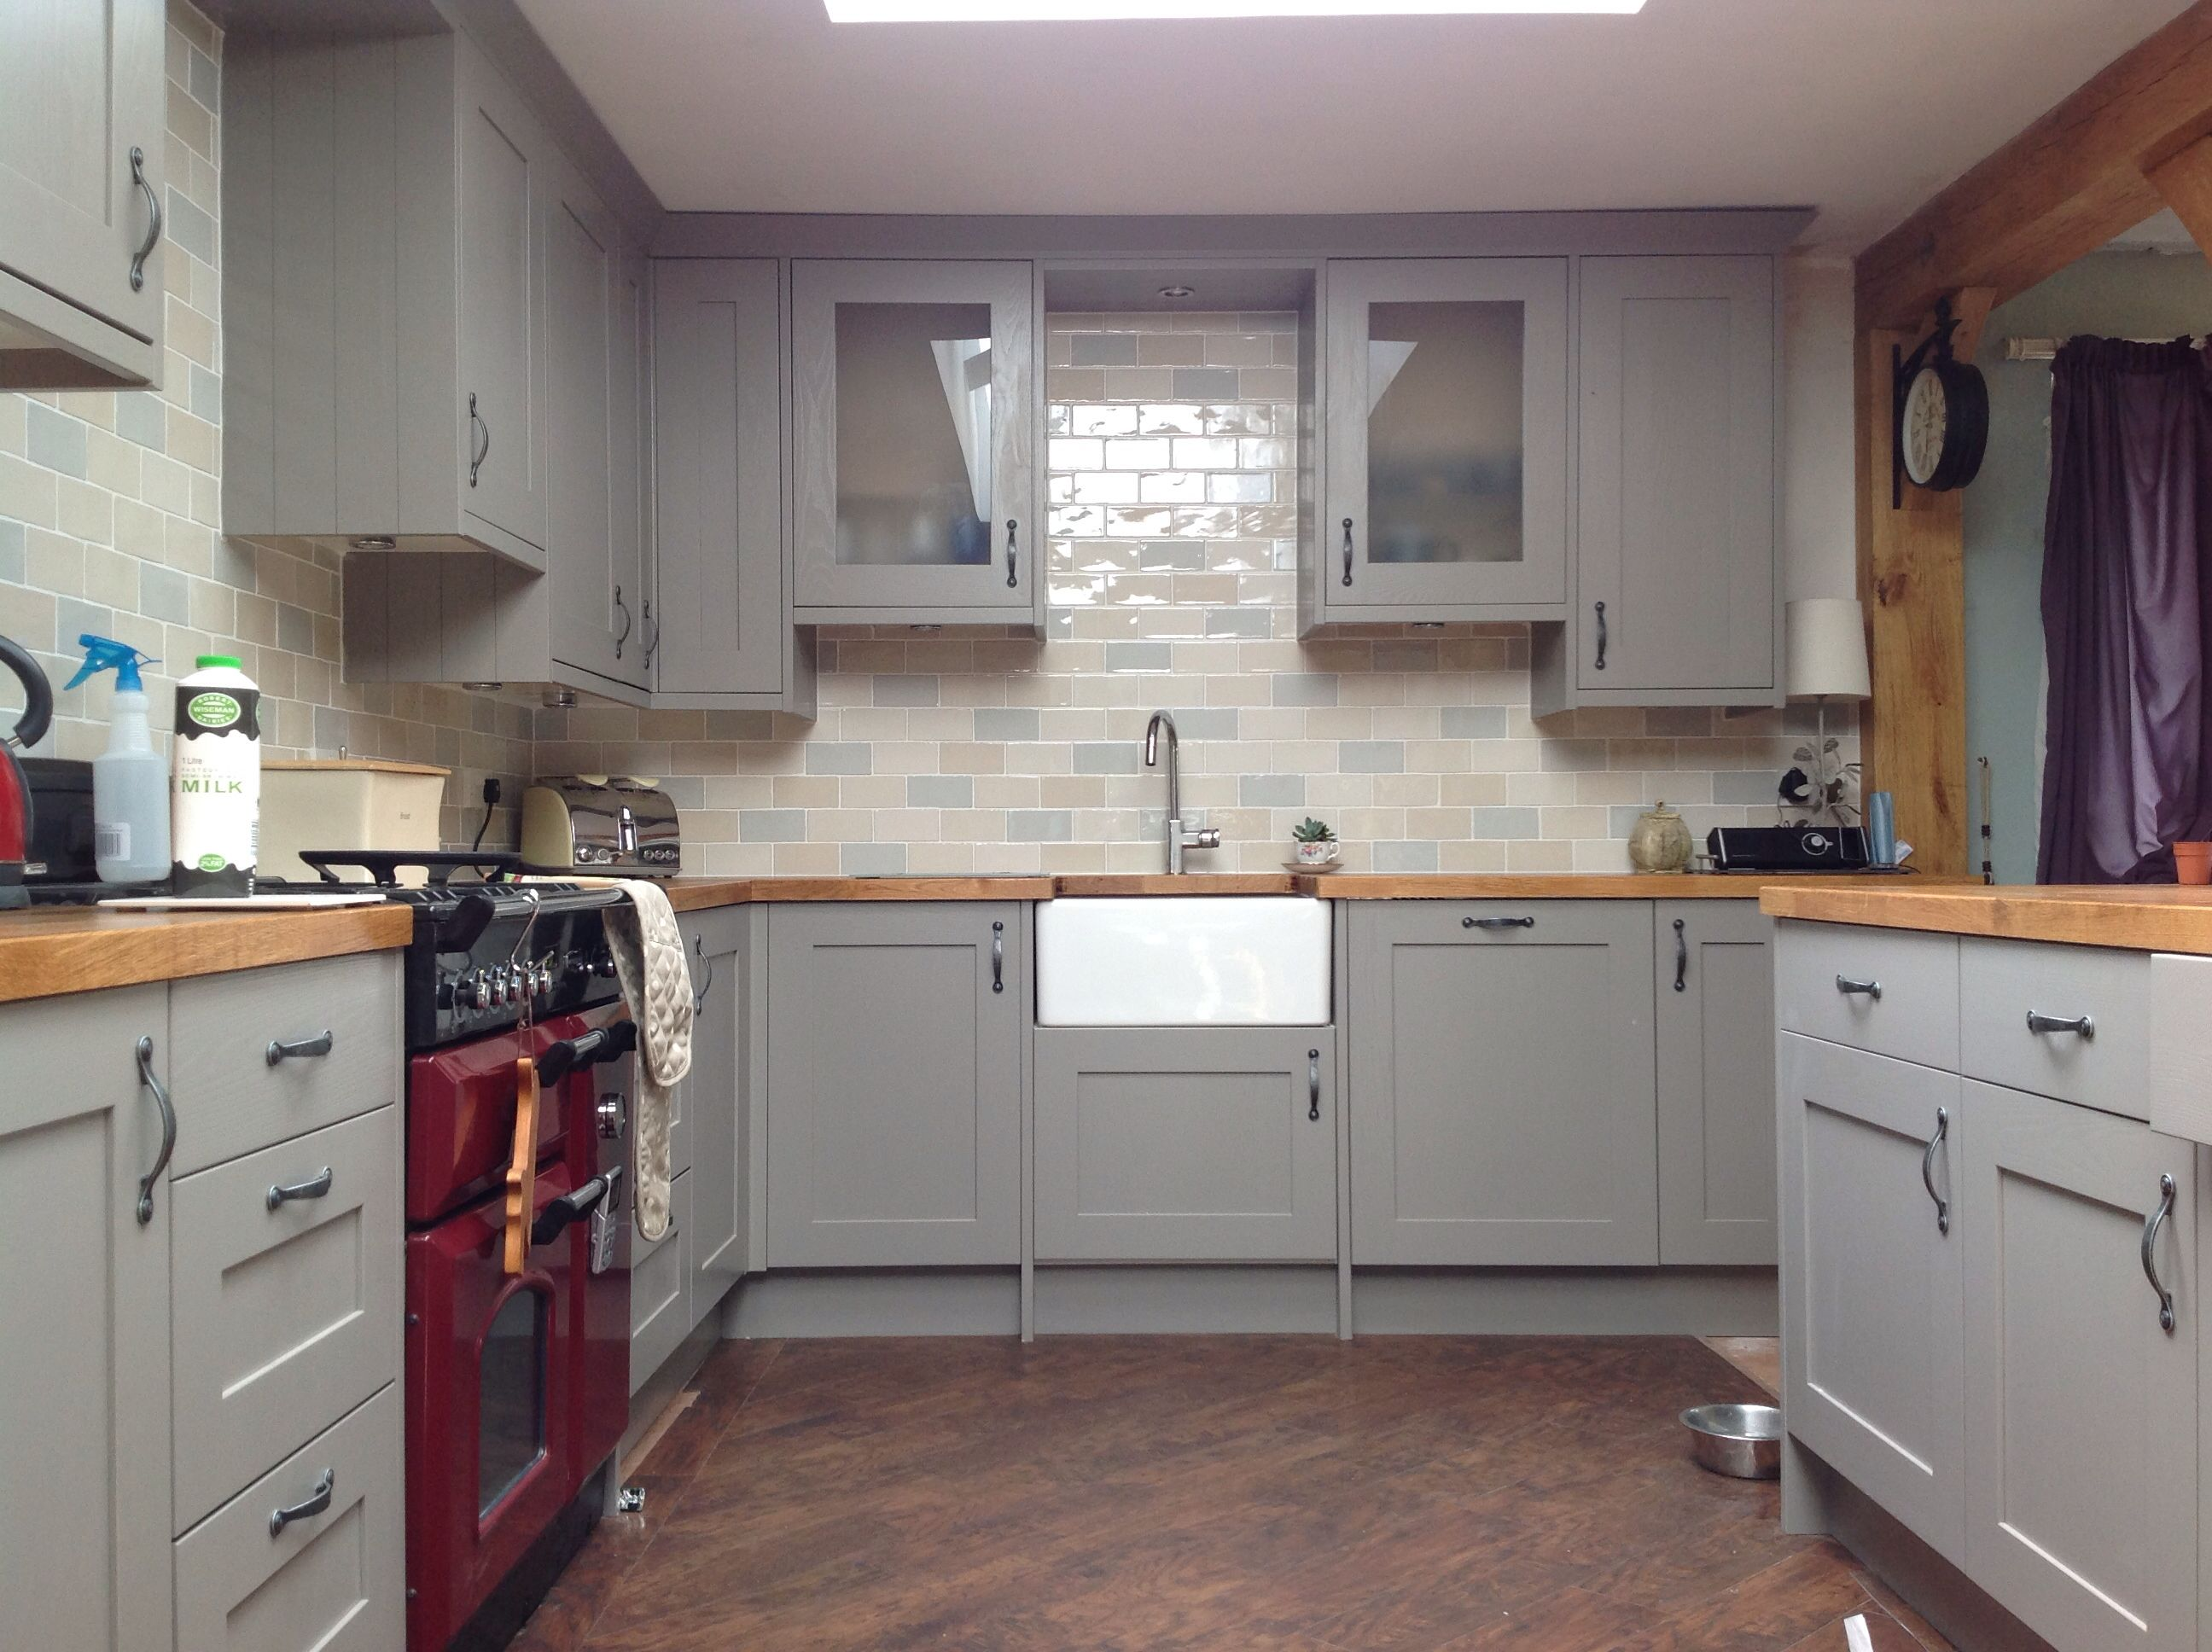 This is my kitchen. All done and dusted with carlisbrooke units in ...